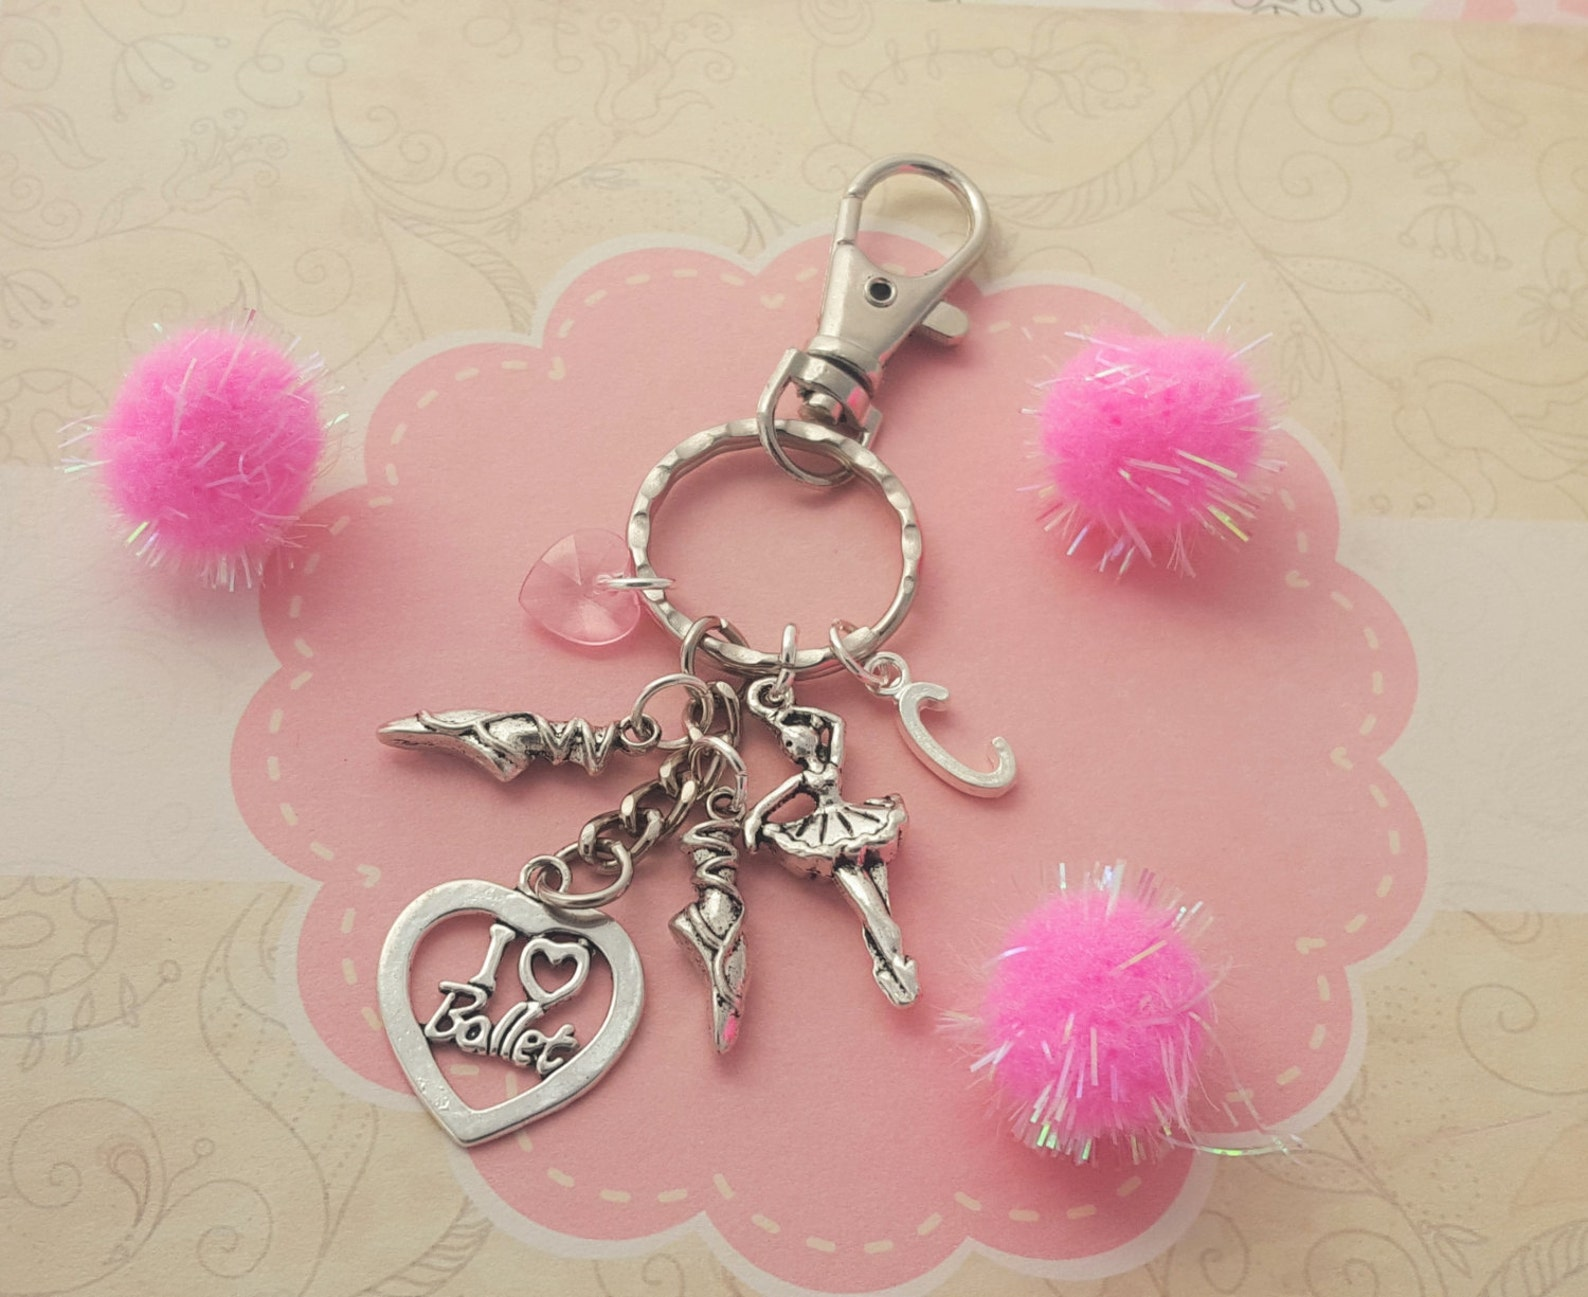 ballerina bag charm, ballet dancer keychain, dance accessory, personalised gift, dancing keyring, kids bag charm, i love ballet,